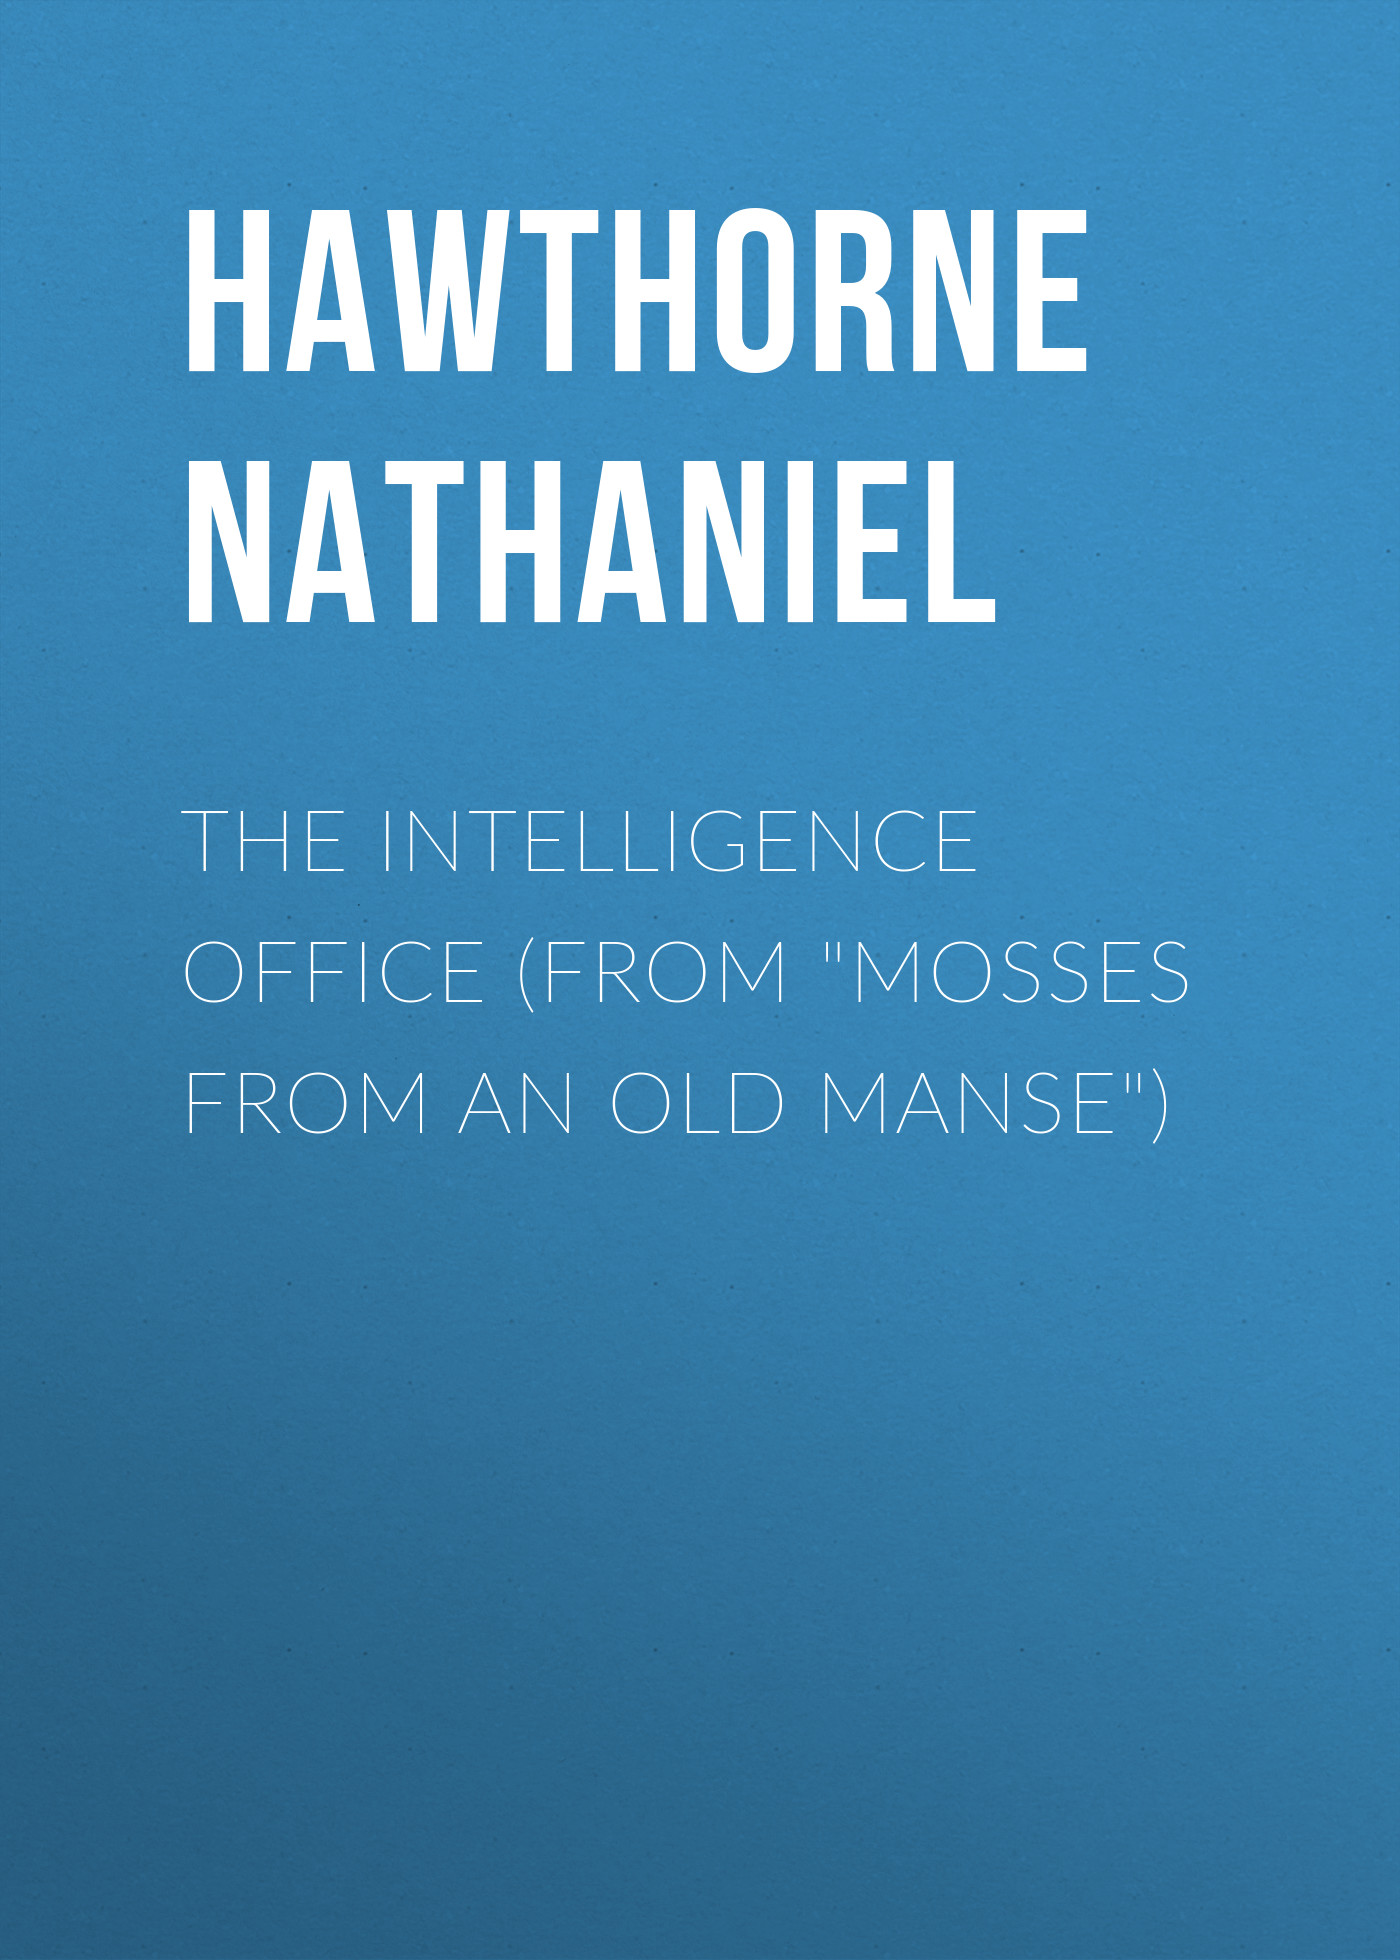 Hawthorne Nathaniel The Intelligence Office (From Mosses from an Old Manse) hawthorne nathaniel the hall of fantasy from mosses from an old manse